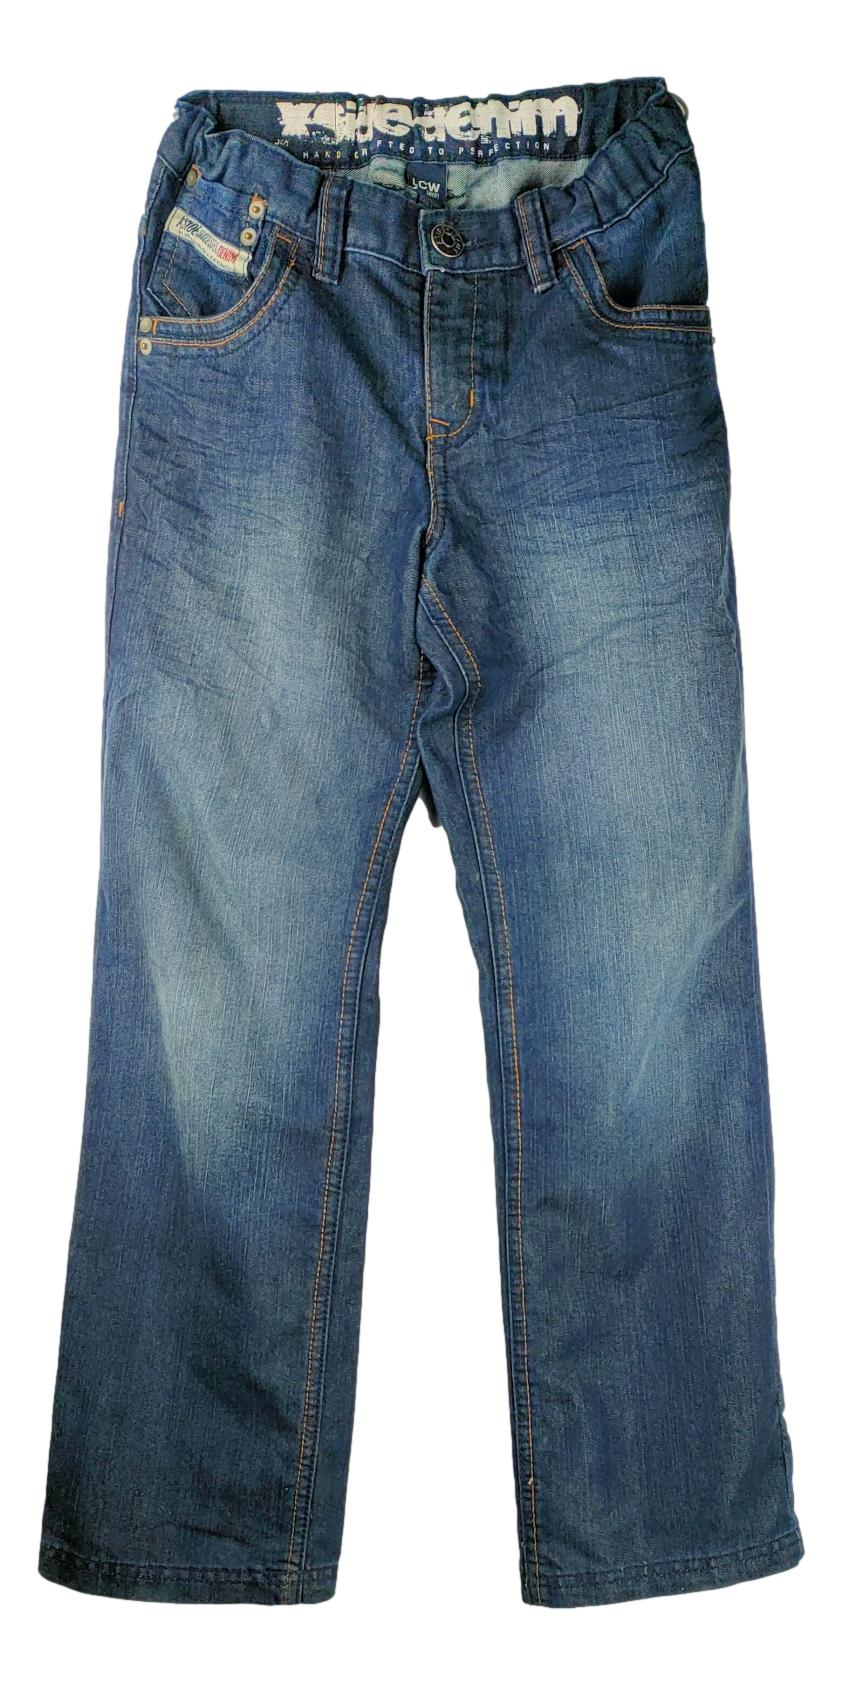 Jean LCW teen - Taille 8 ans